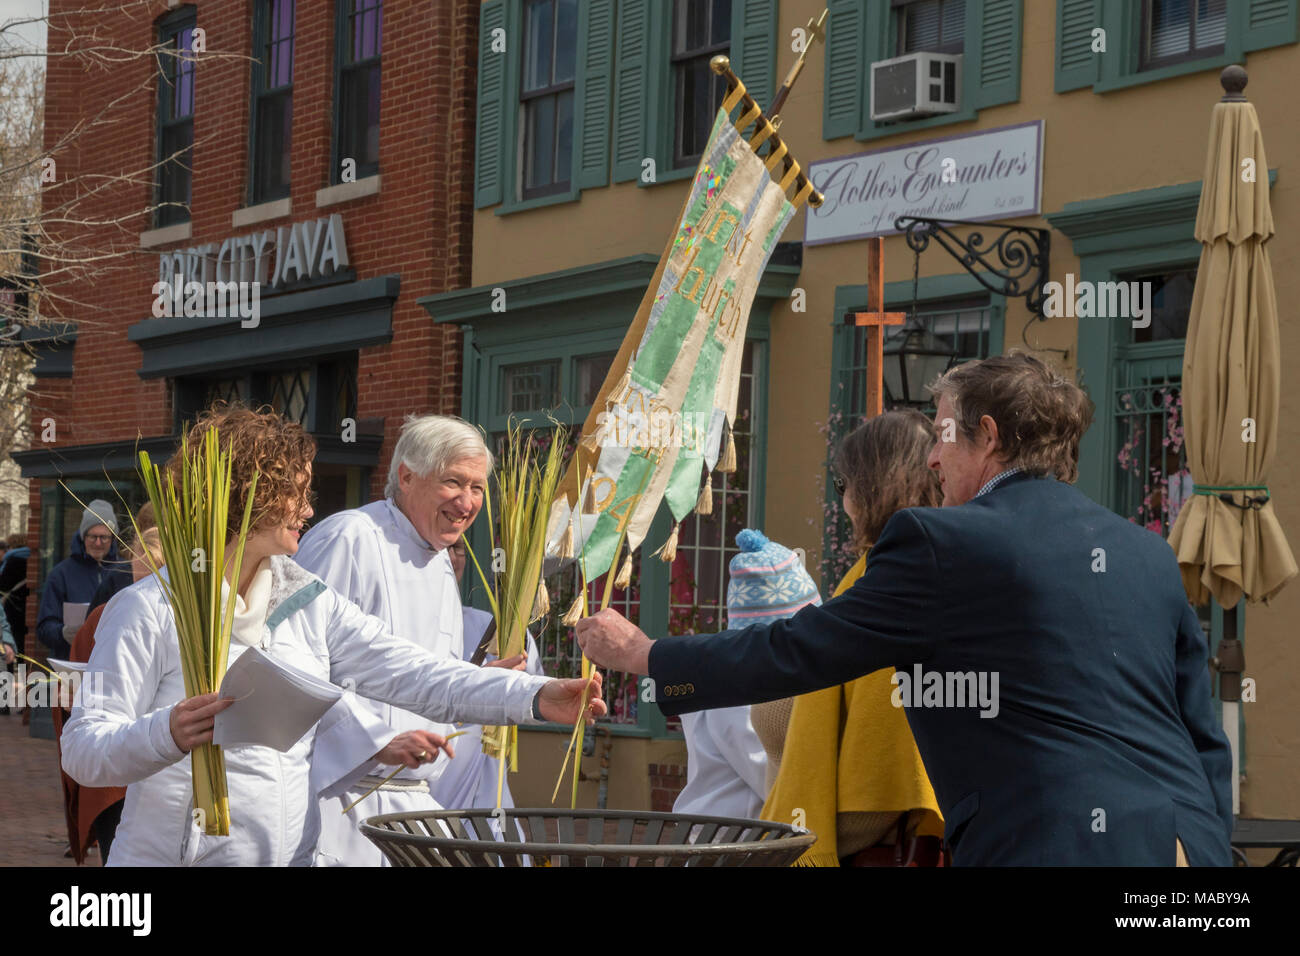 Washington, DC - Members of Christ Church celebrated Palm Sunday with a procession in their Capitol Hill neighborhood before worship at the church. As - Stock Image